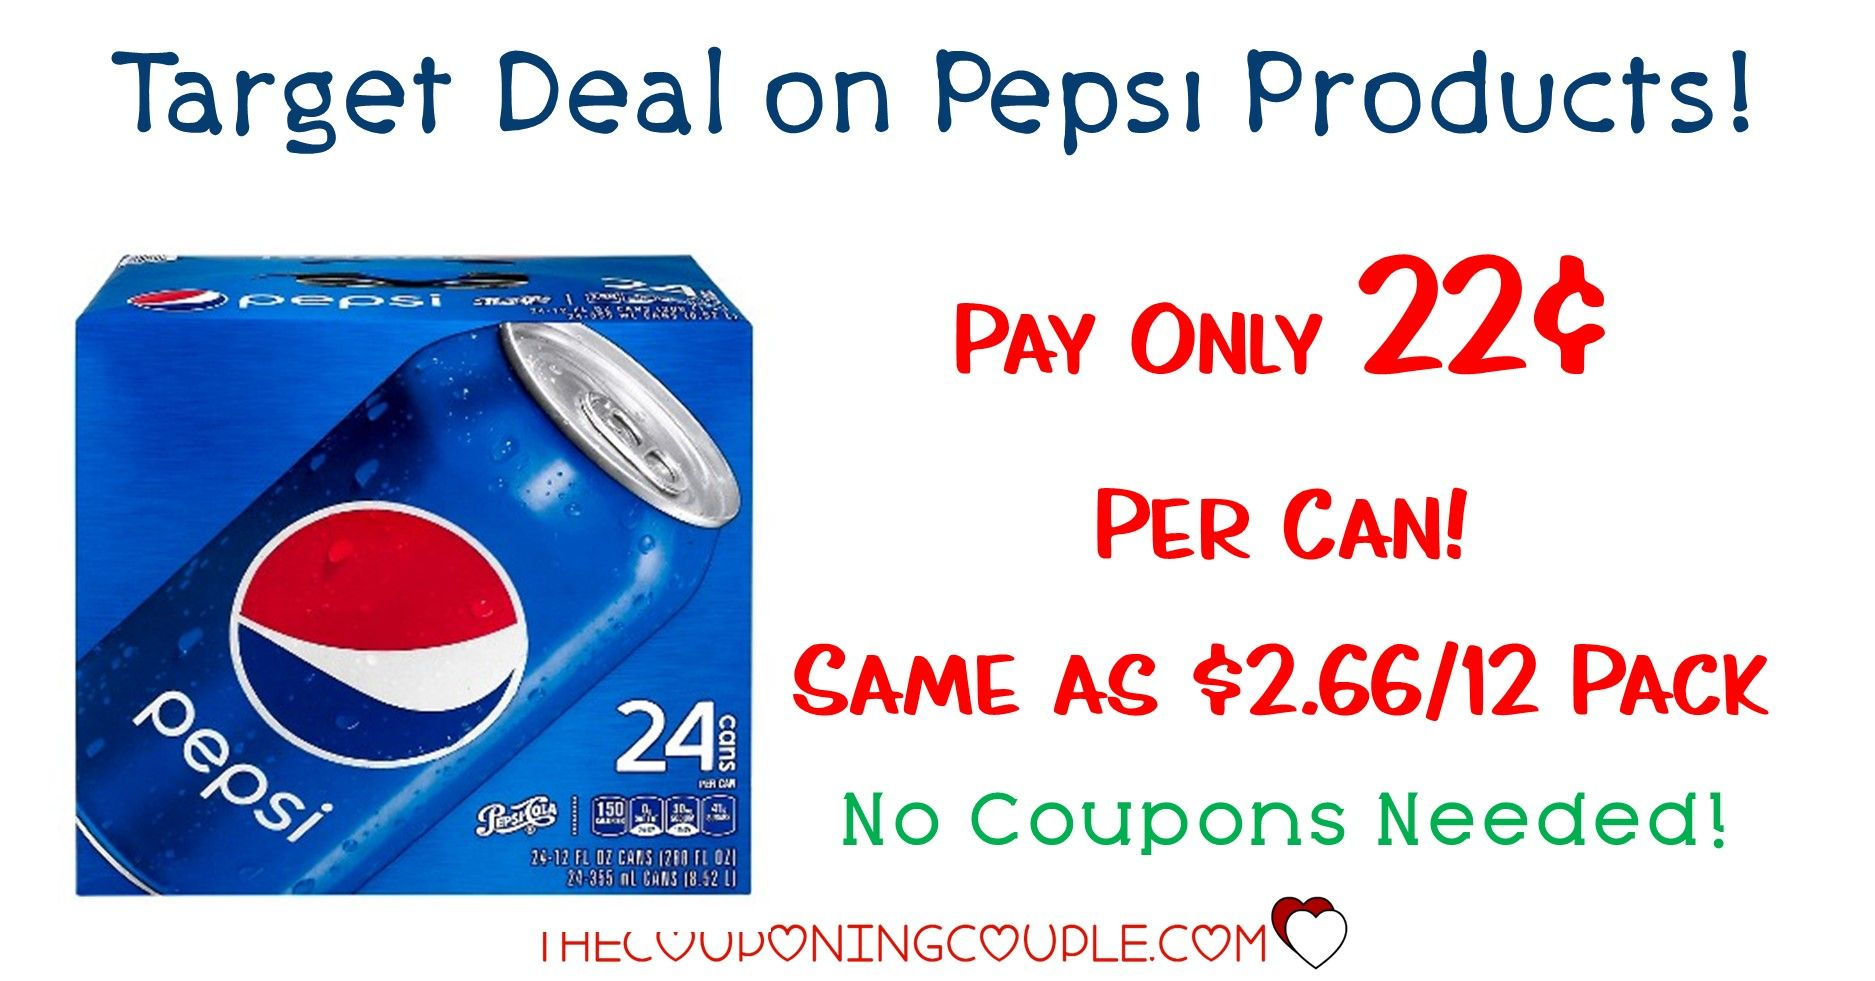 Stock Up Pepsi Products Soda Pop 24 Packs For Only 0 22 Per Can With Target Deal Soda Pop Pepsi Soda